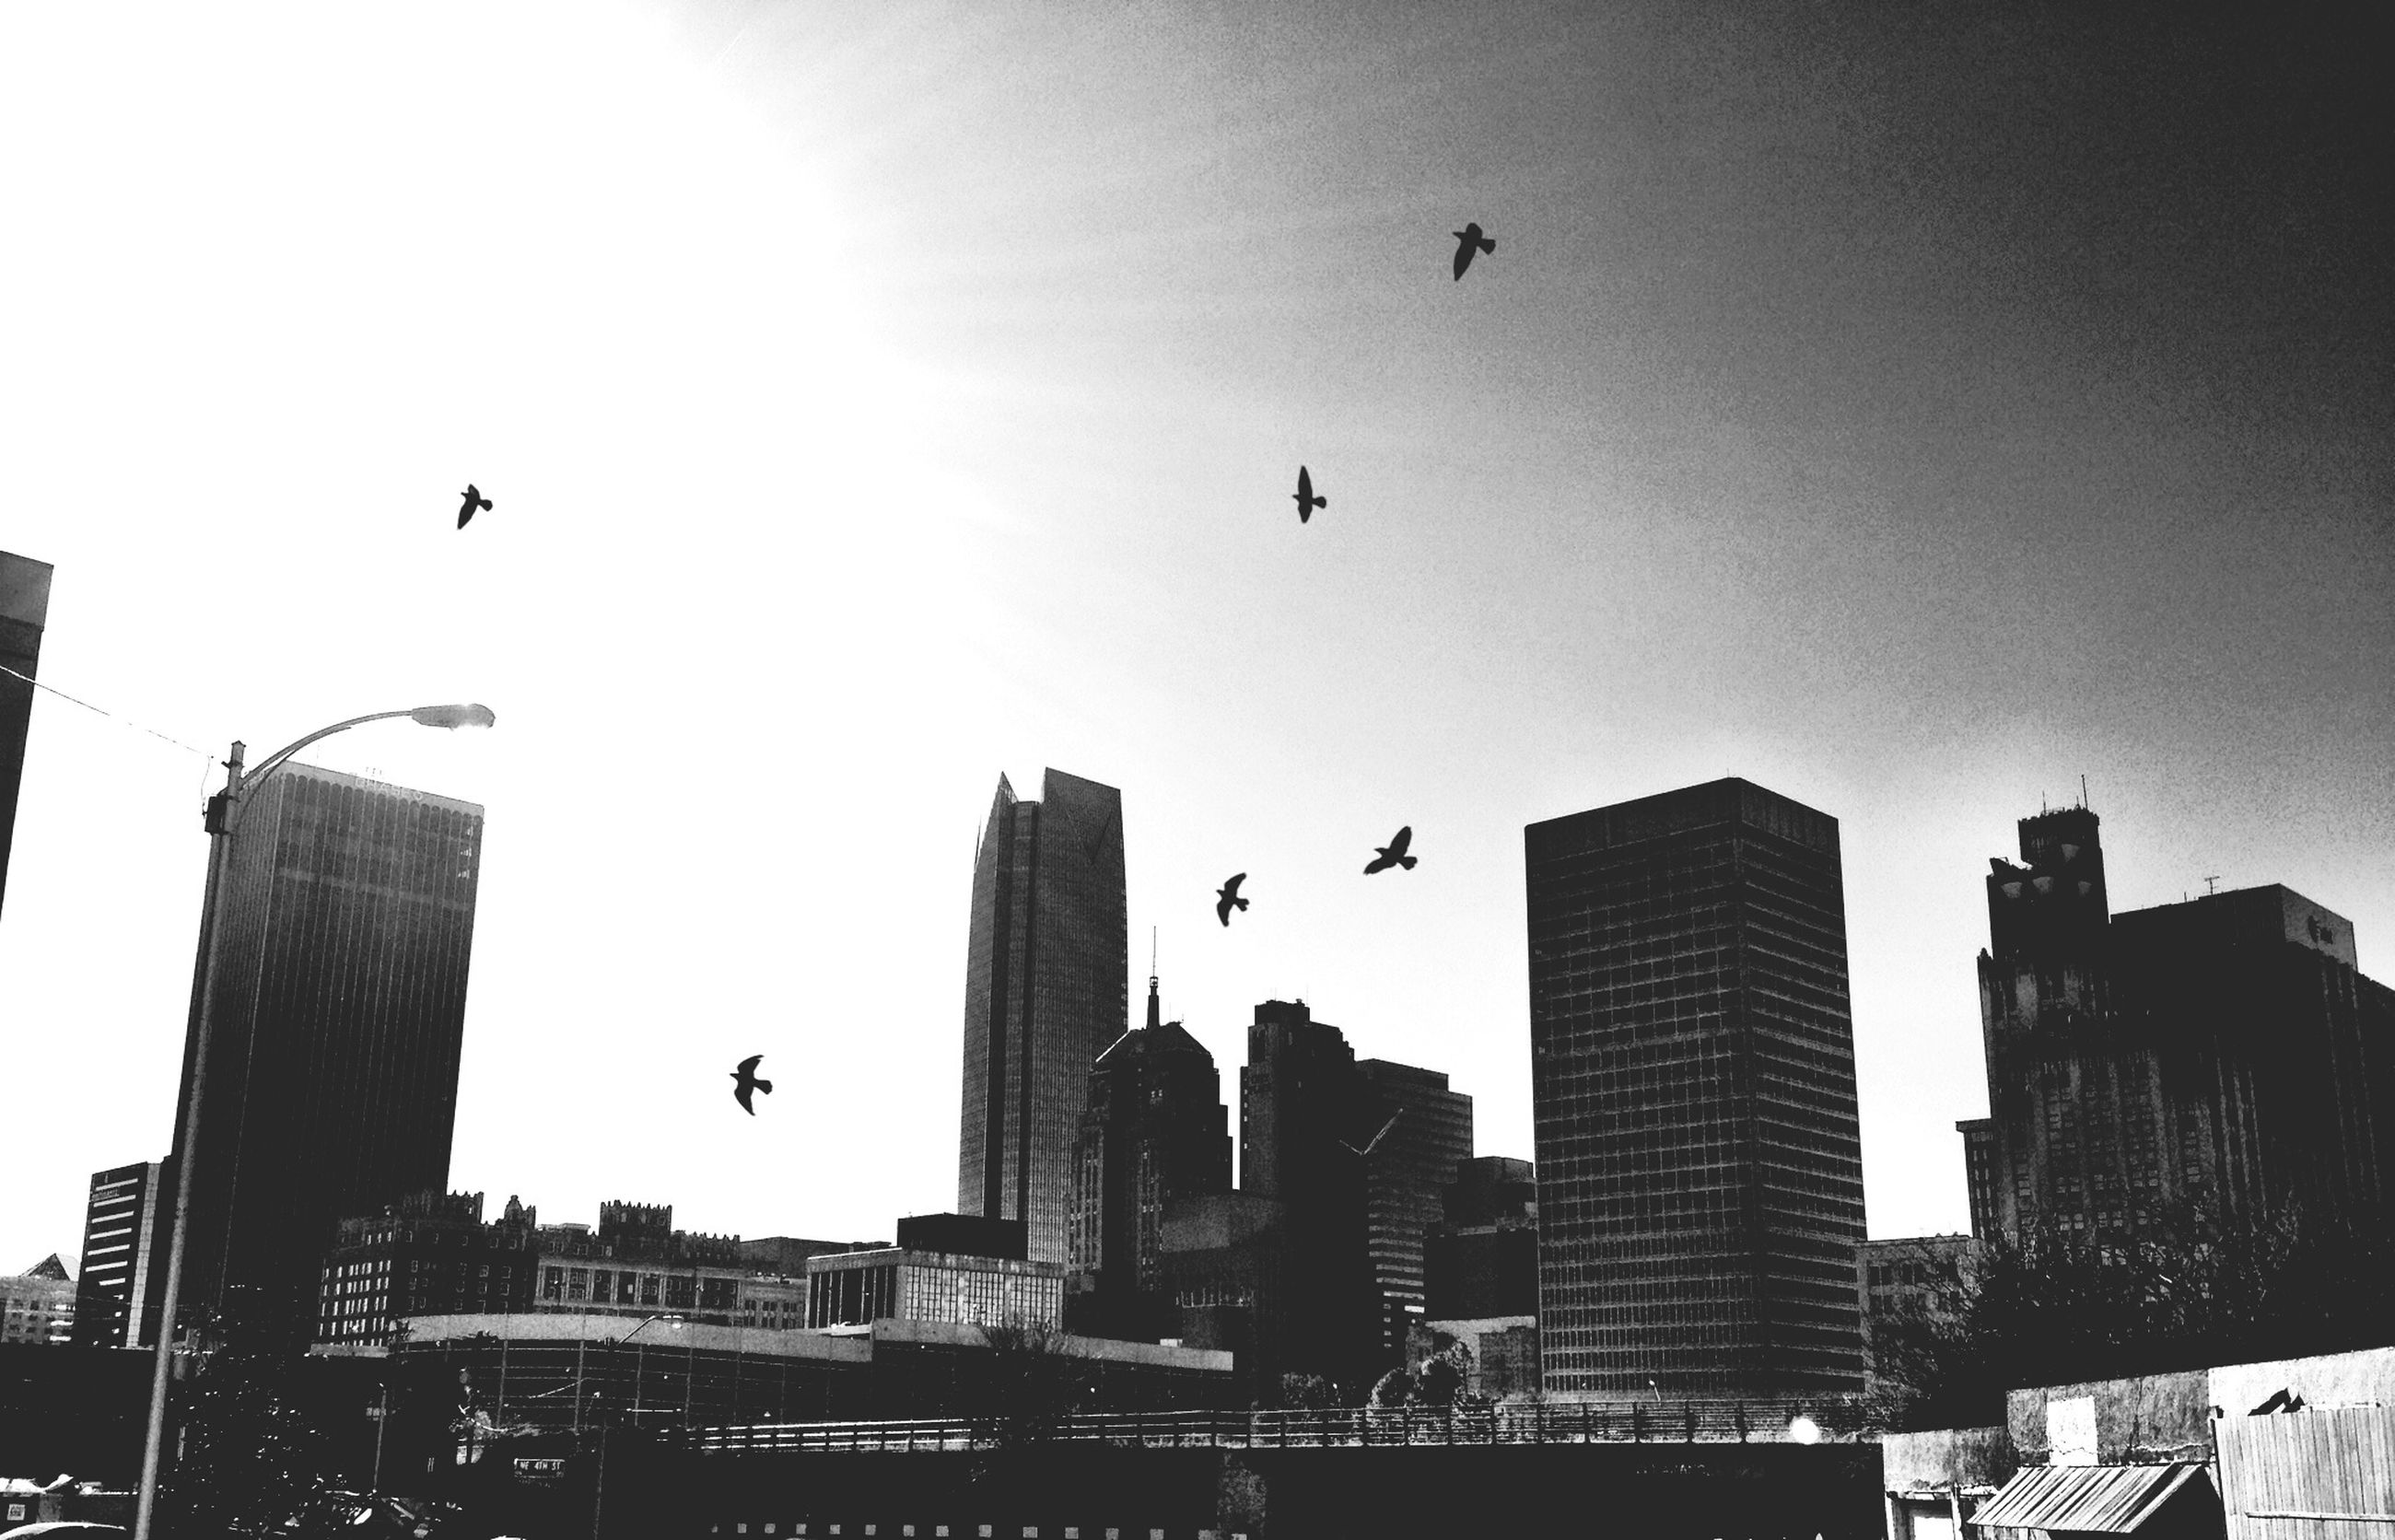 architecture, building exterior, built structure, flying, bird, low angle view, city, skyscraper, clear sky, animal themes, mid-air, modern, animals in the wild, sky, silhouette, sun, office building, wildlife, city life, building